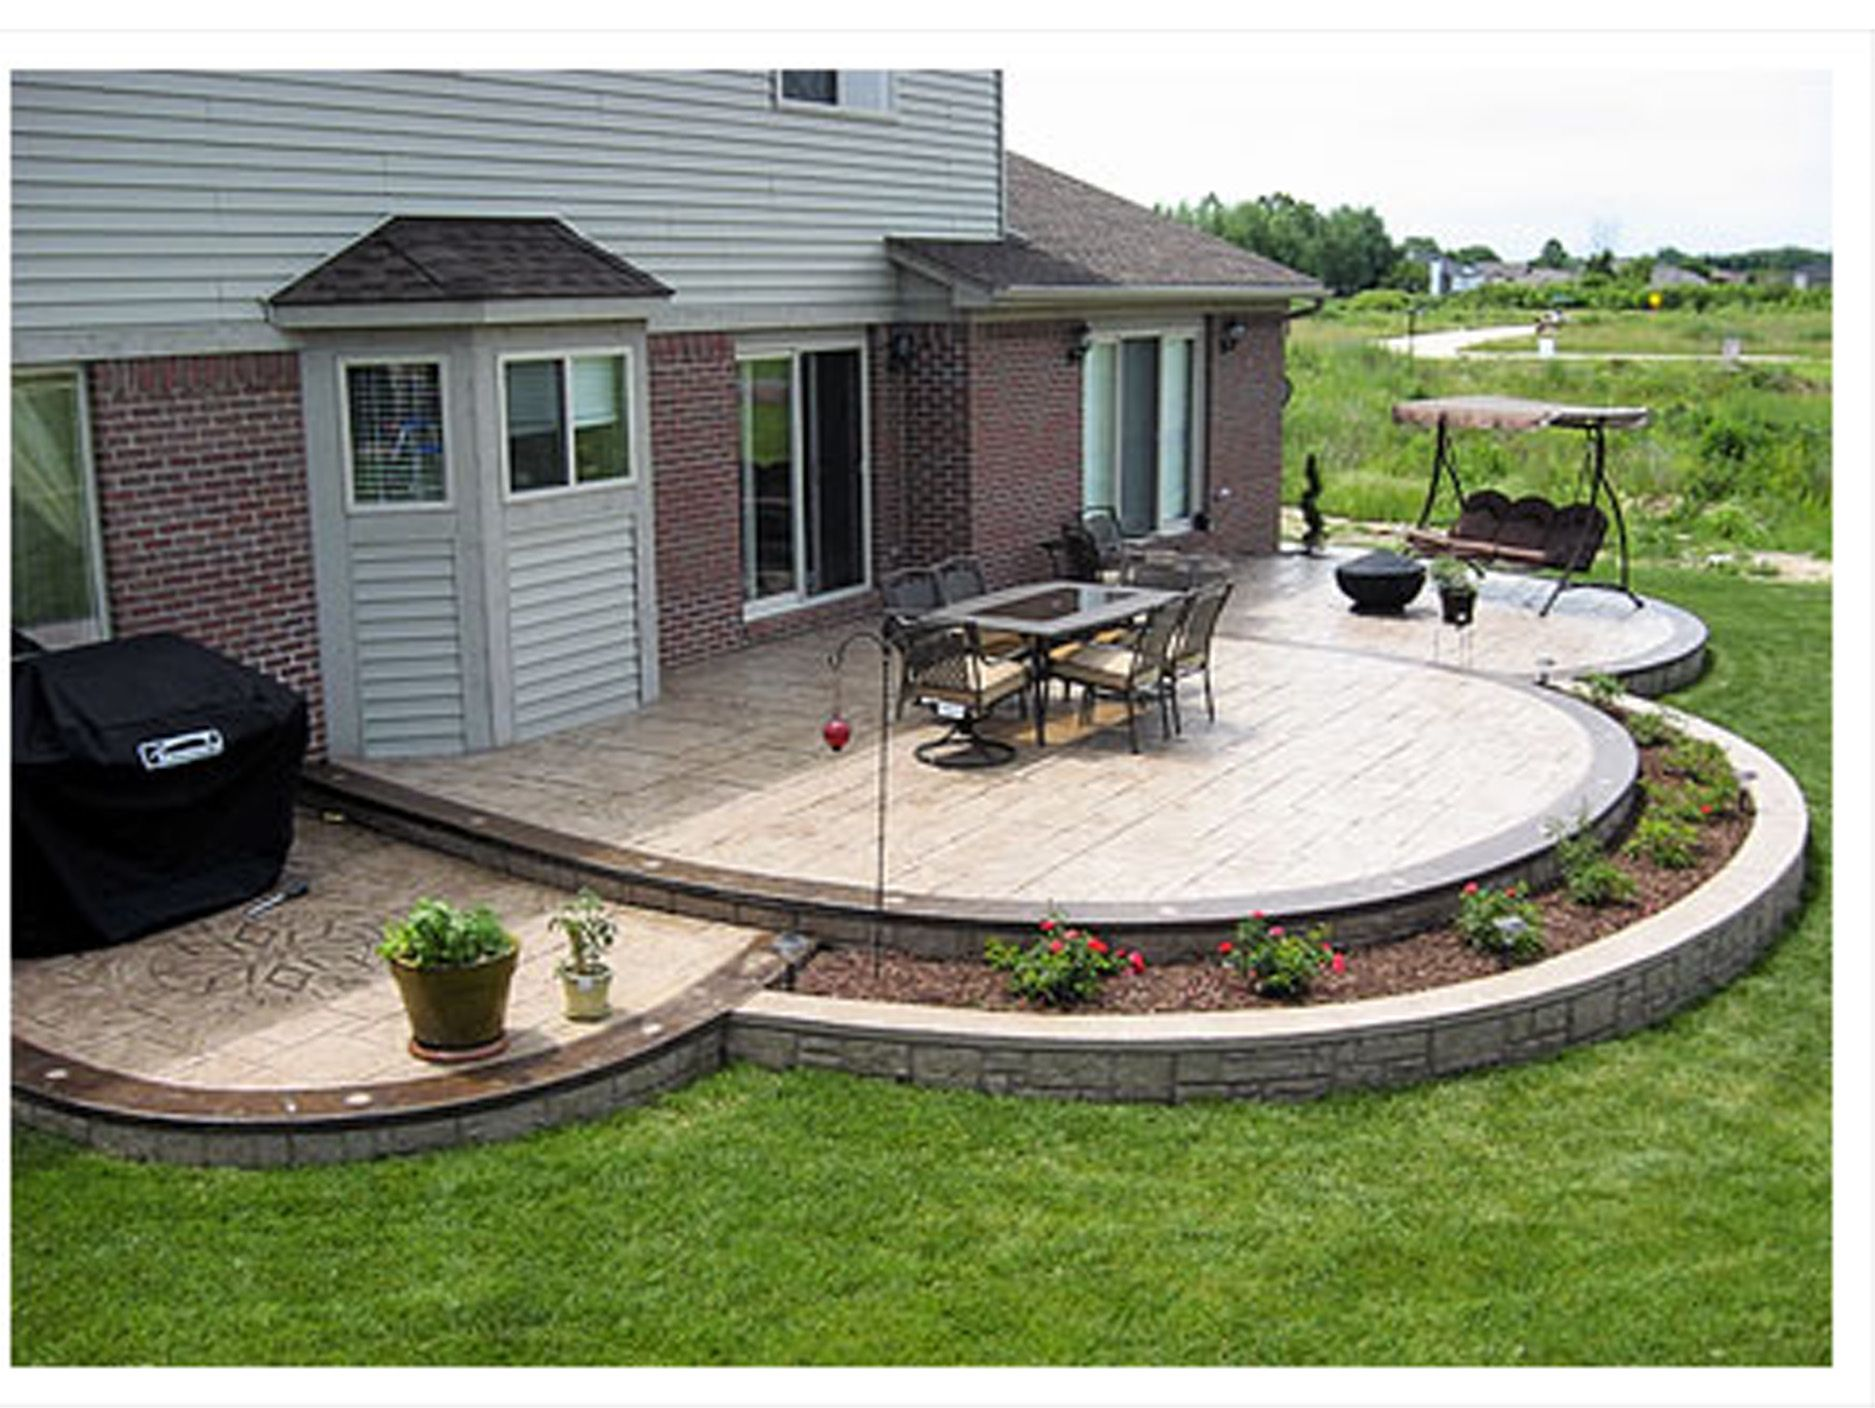 how to pour a suspended concrete patio   Are you looking ... on Poured Concrete Patio Ideas id=25722